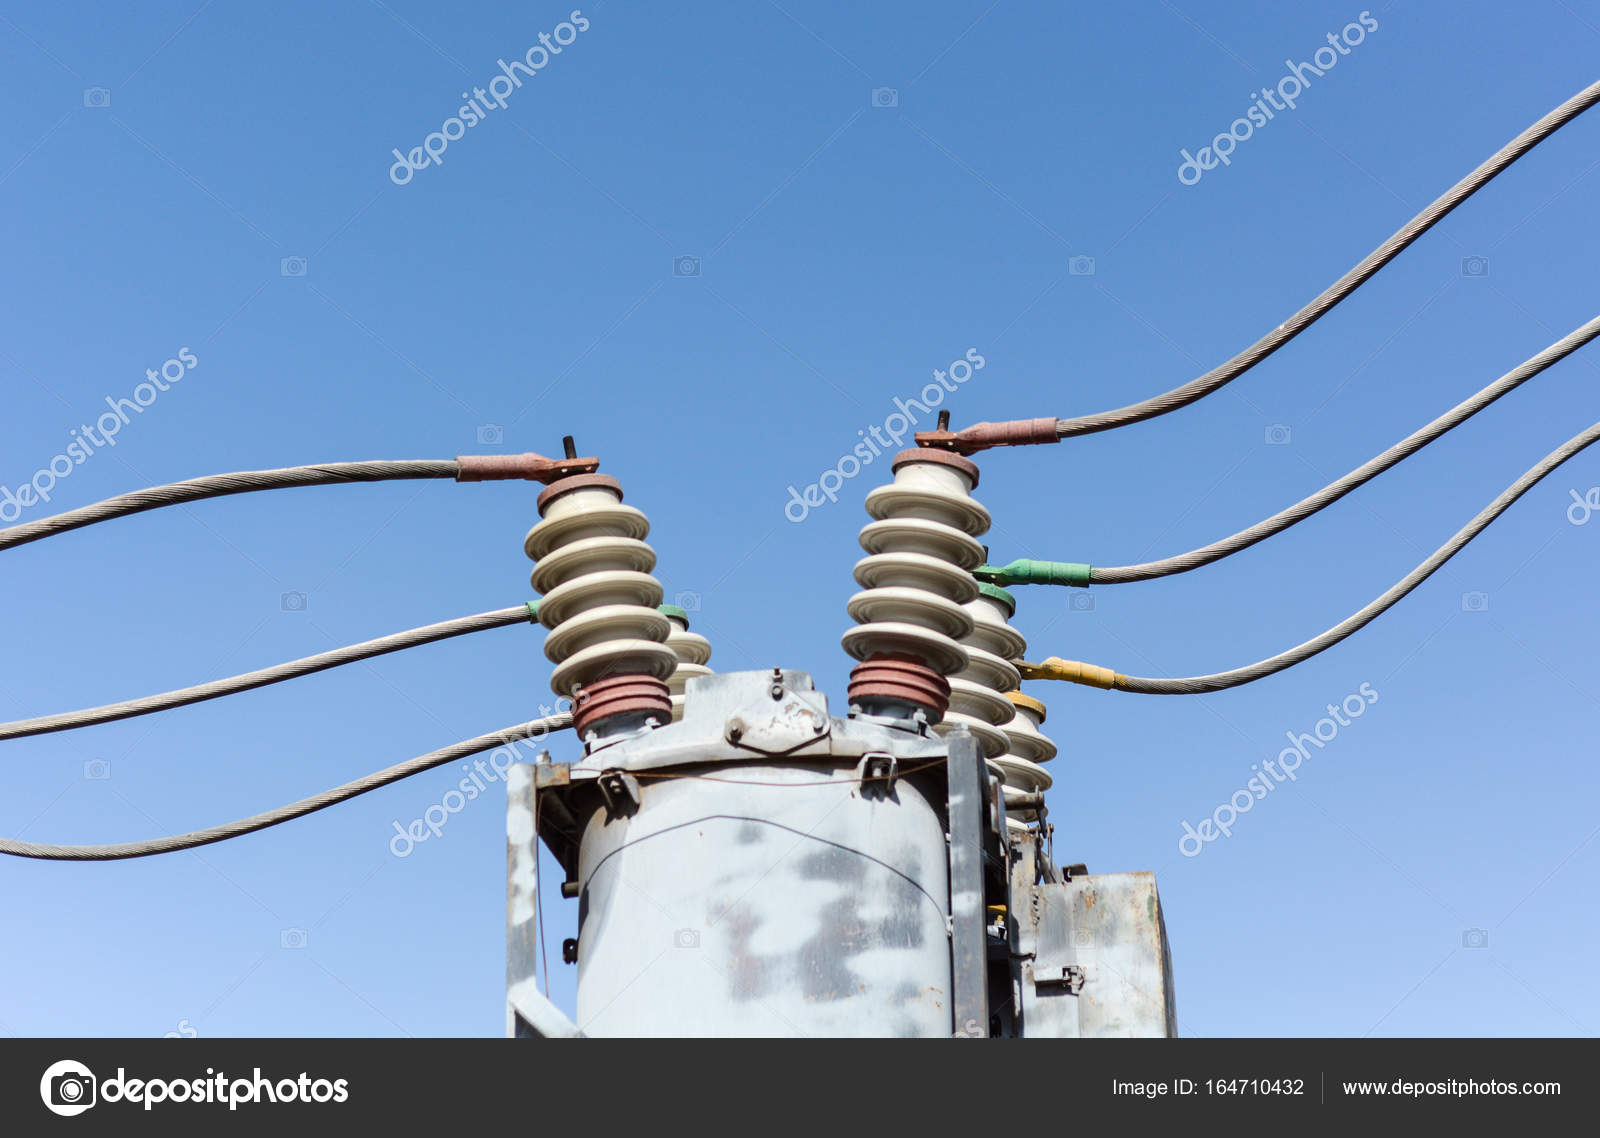 High-voltage wires with insulators — Stock Photo © panzer25 #164710432